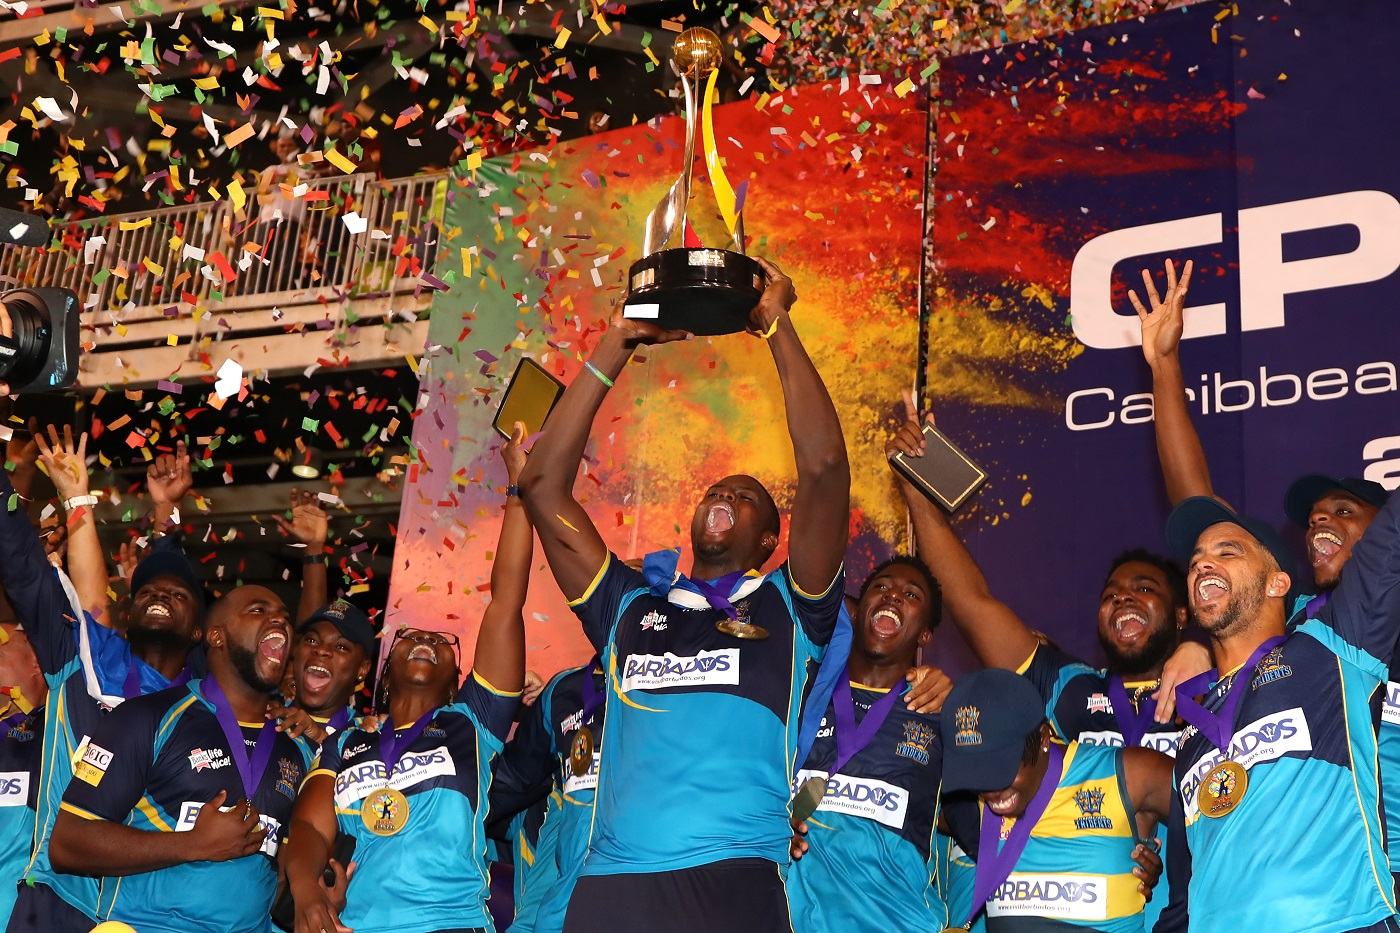 Go local: the Caribbean Premier League has switched from trying to appeal to an Indian audience to now being wholly focused on its domestic fan base and talent